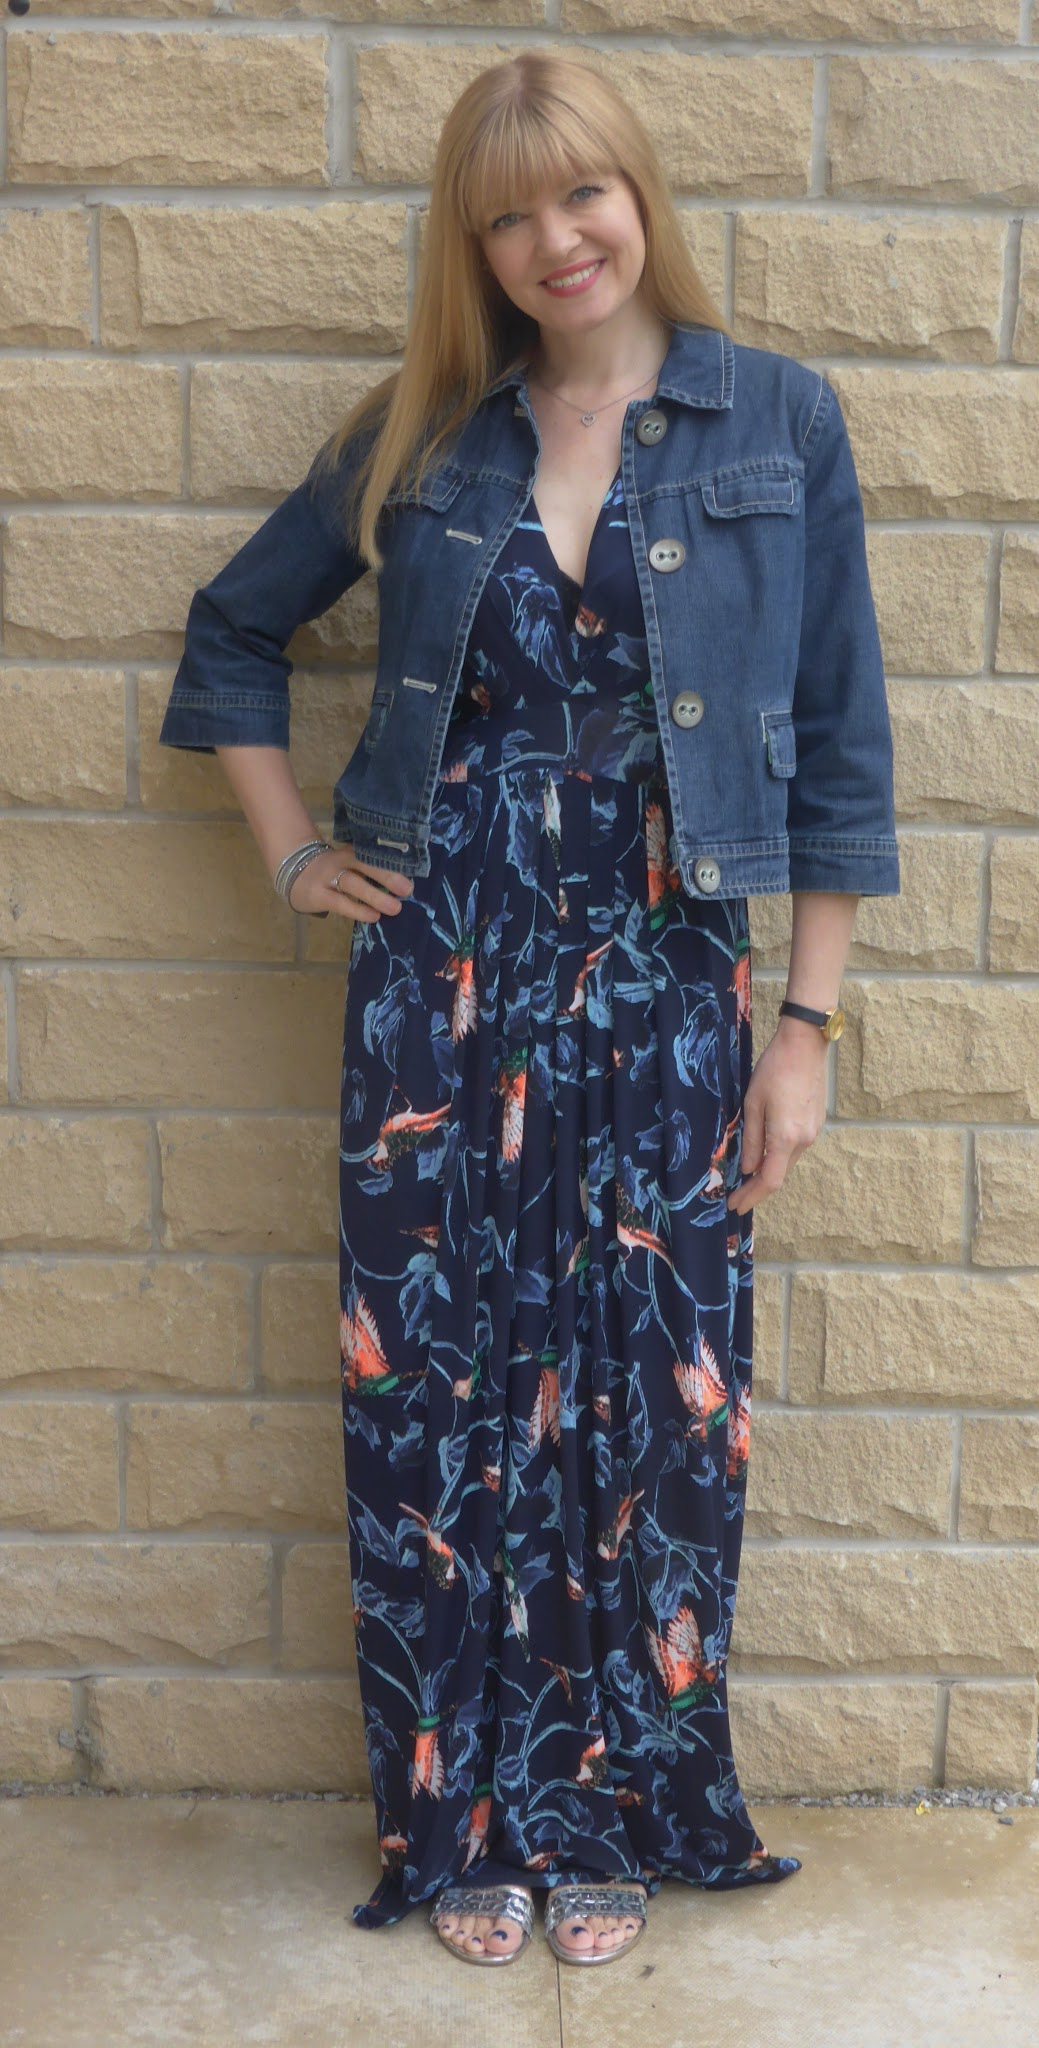 You searched for: maxi denim jacket! Etsy is the home to thousands of handmade, vintage, and one-of-a-kind products and gifts related to your search. No matter what you're looking for or where you are in the world, our global marketplace of sellers can help you find unique and affordable options. Let's get started!